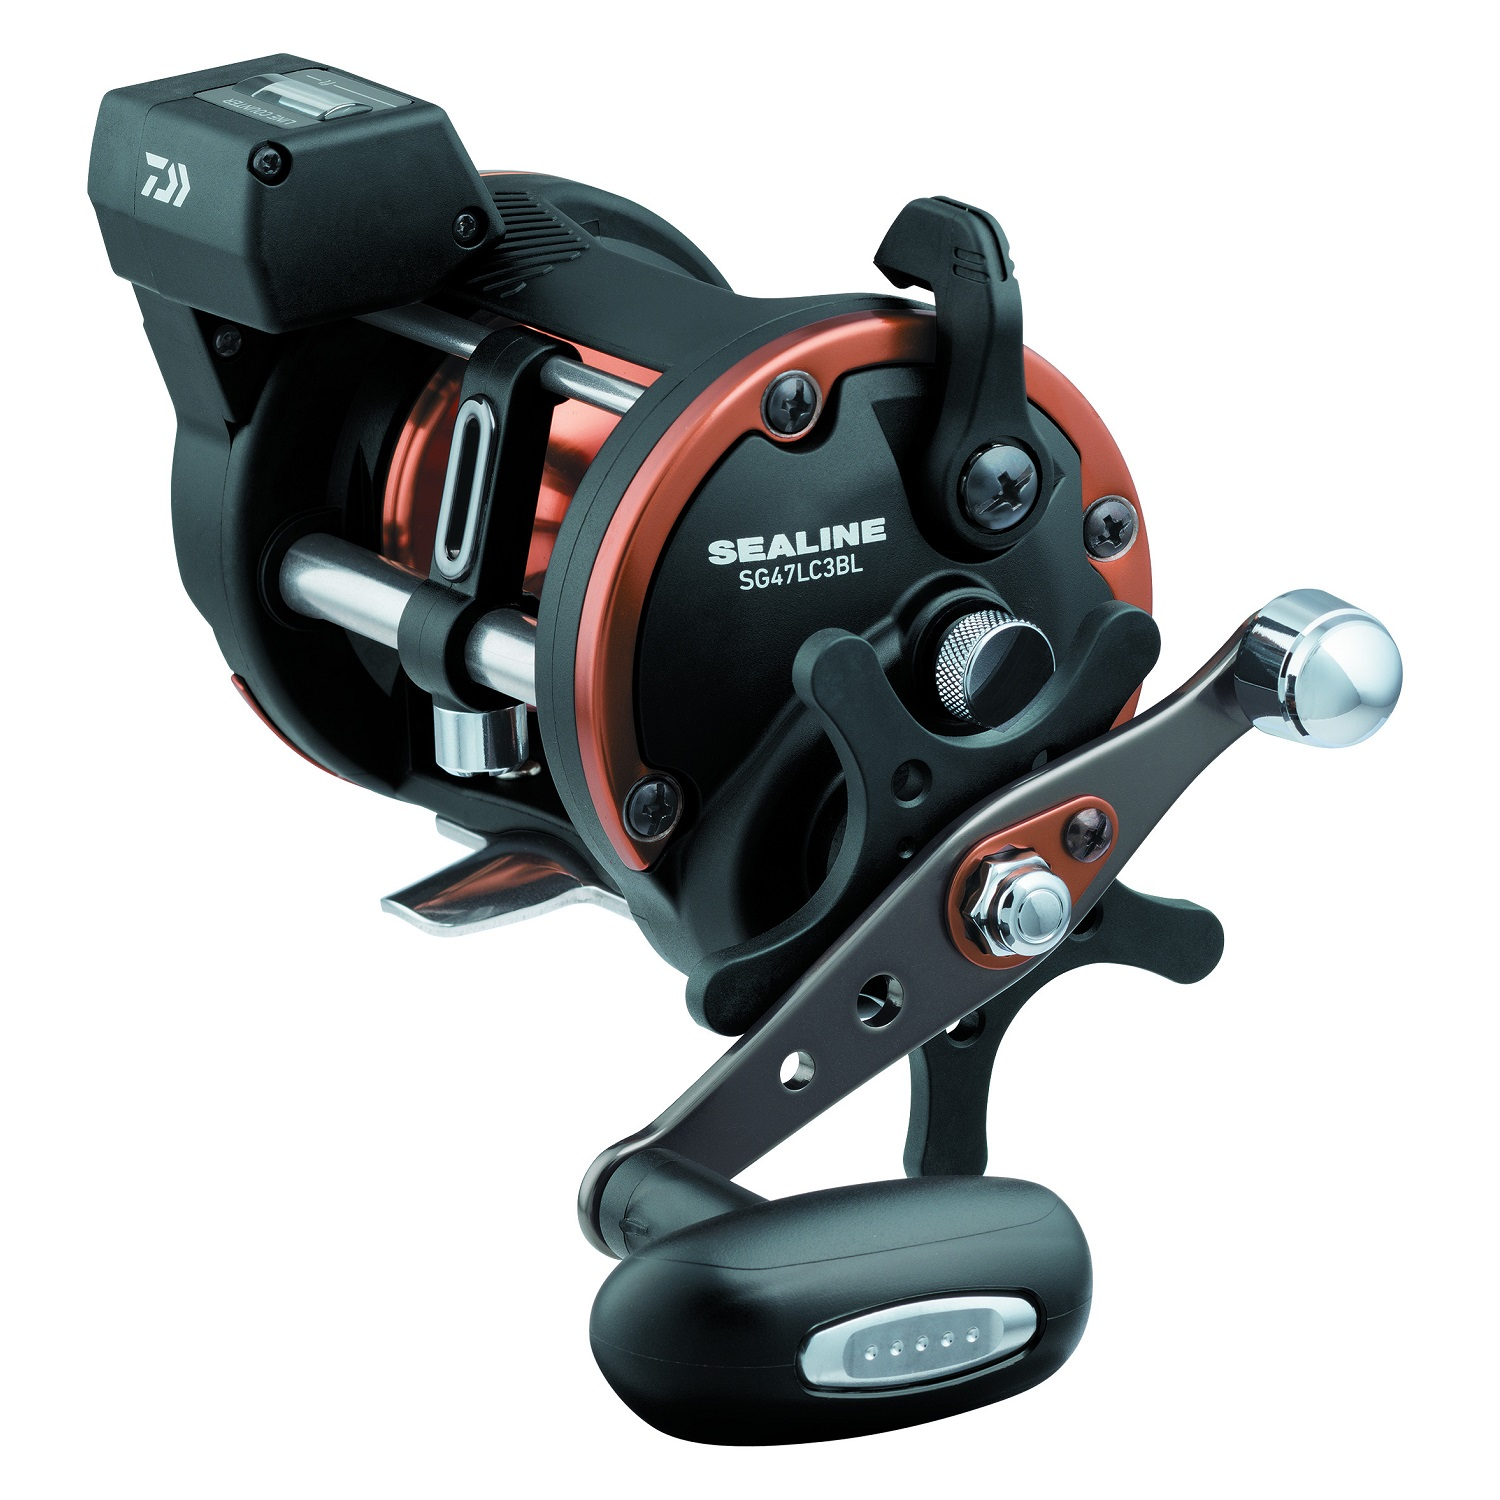 Daiwa Sealine SG-3B 4.2:1 Line Counter Conventional Reel, Right Hand, Dual Paddle Handle - SG27LC3BW